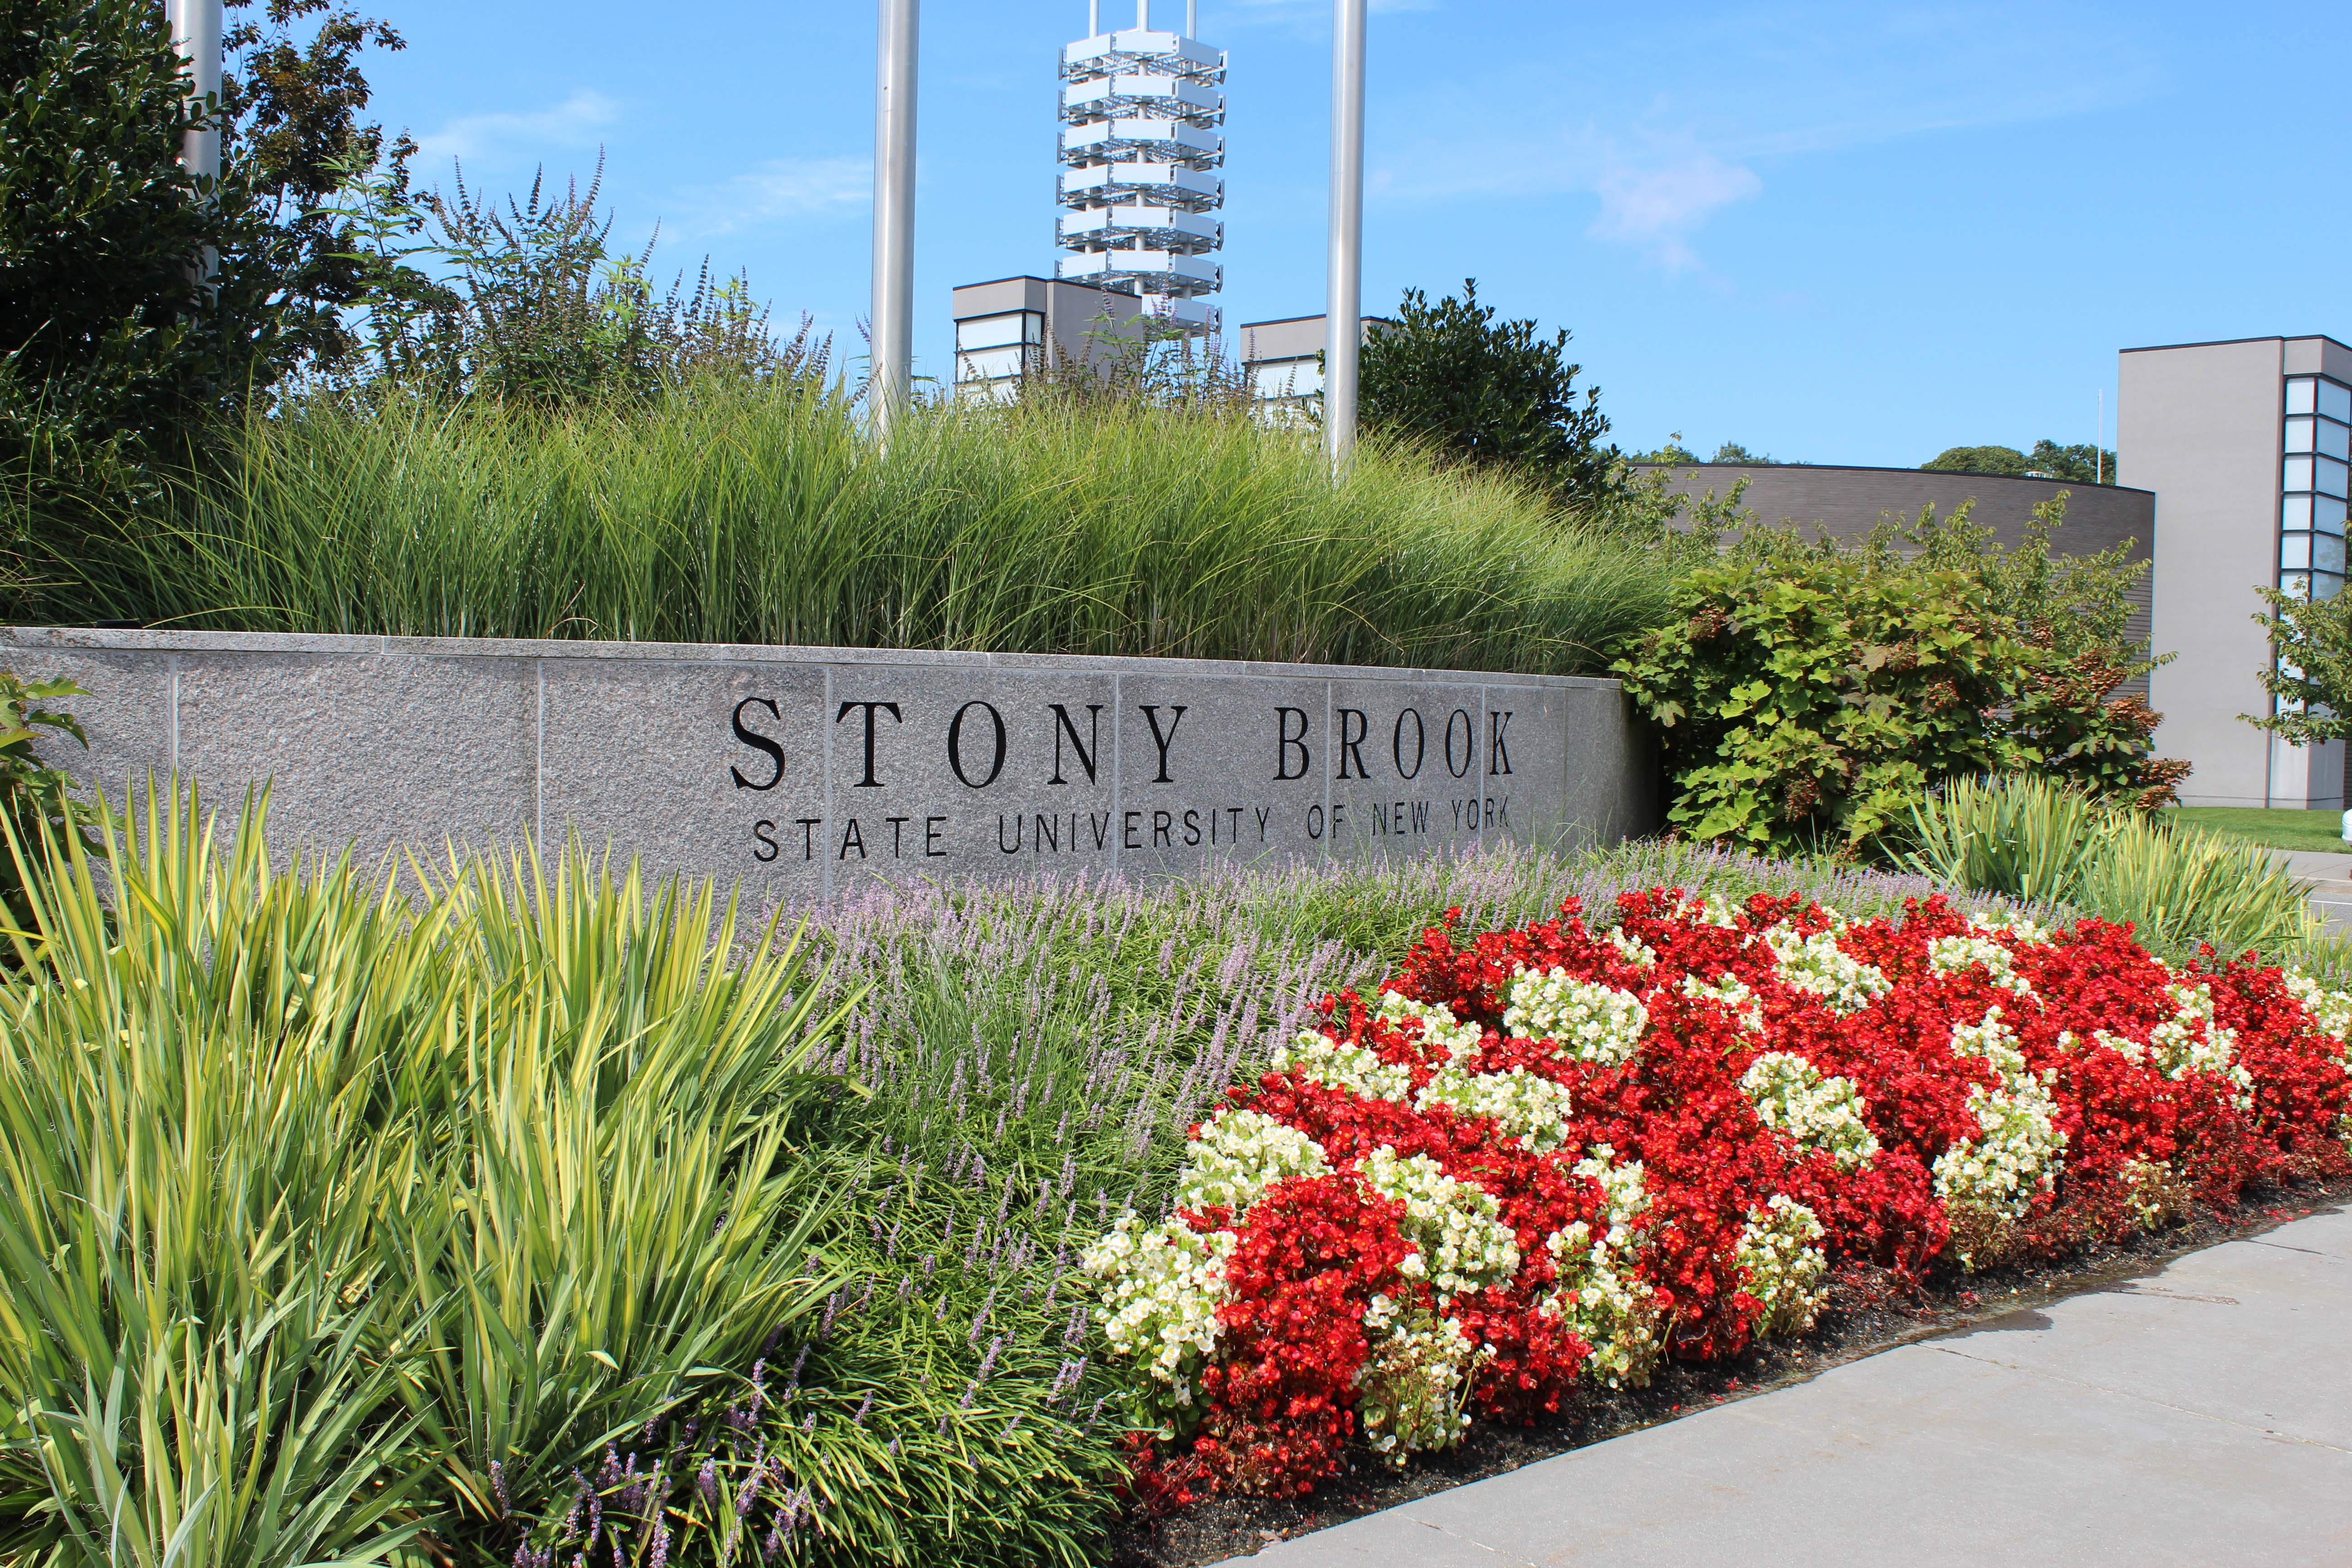 Letter to the editor why im not returning to stony brook stony brook universitys graduate students have outdated orientation information manju shivacharanstatesman file spiritdancerdesigns Choice Image